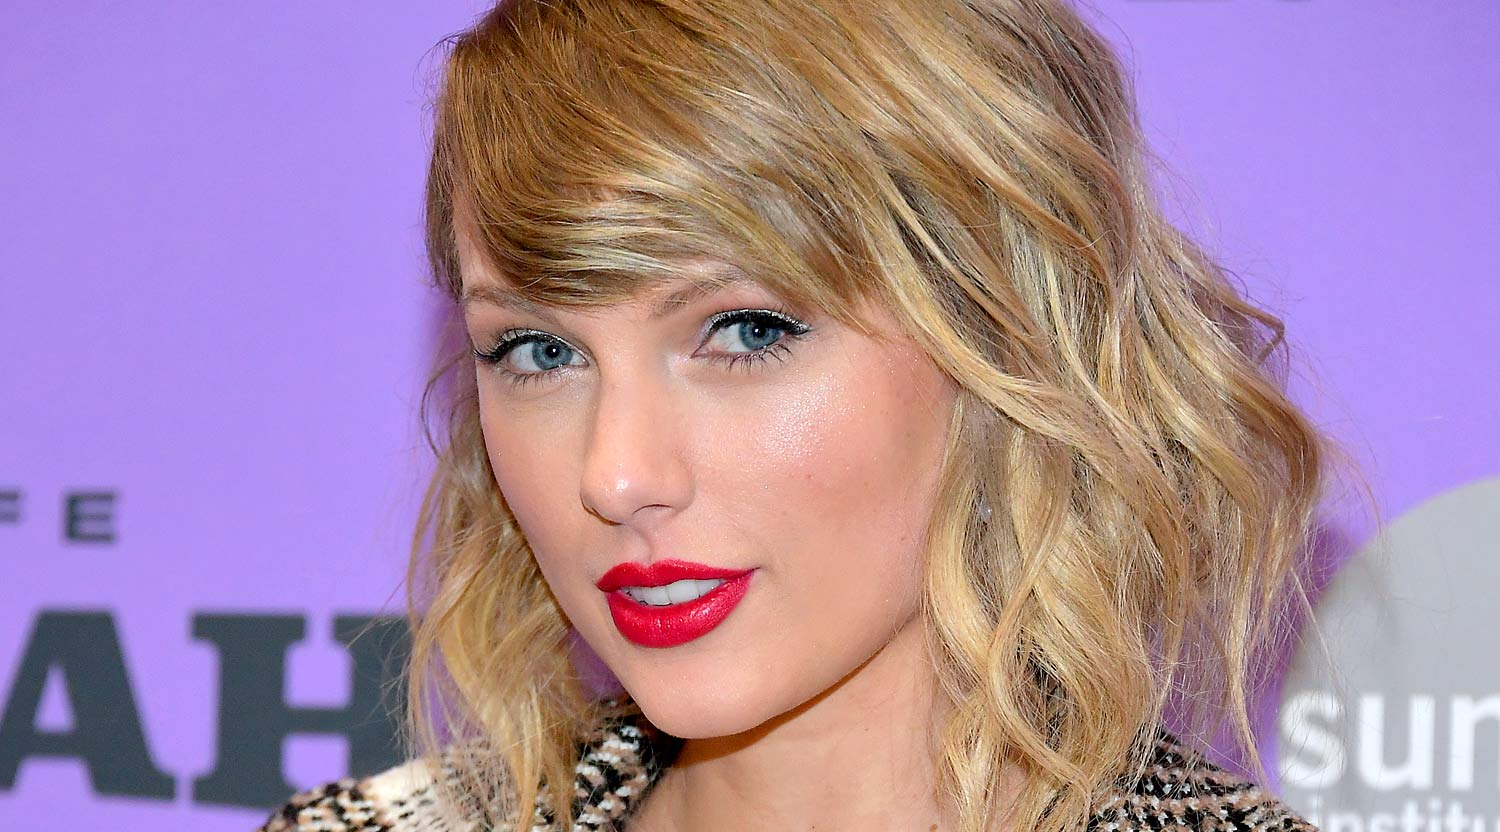 Taylor Swift S Fans Are Freaking Out Over These Mad Woman Lyrics Folklore Music Taylor Swift Just Jared